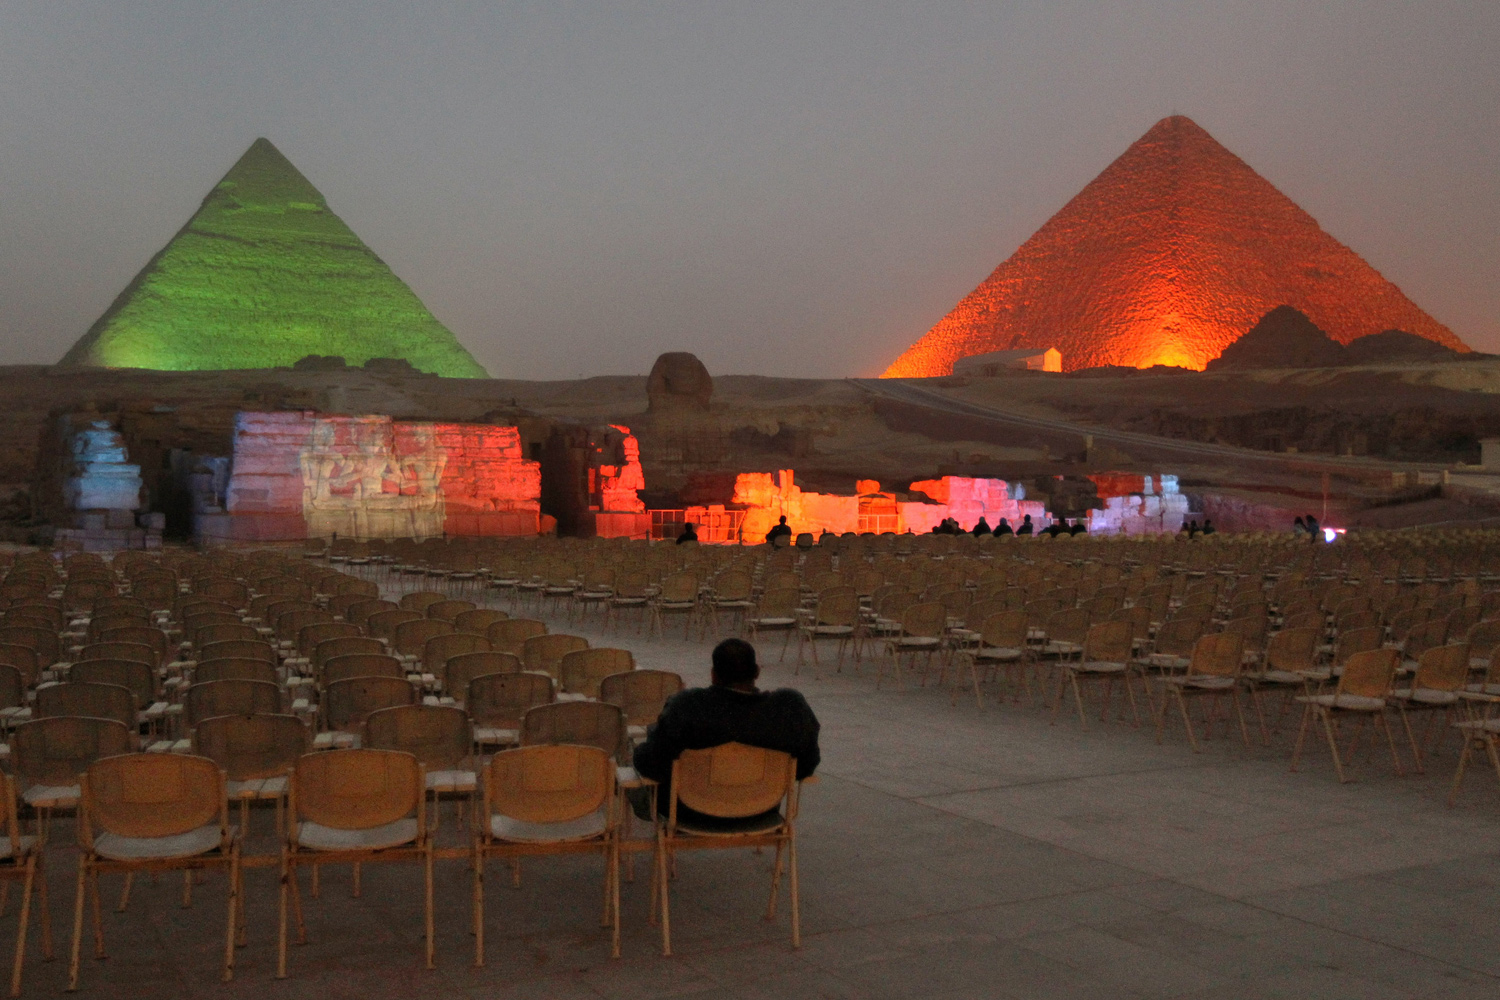 February 15, 2011. An Egyptian visitor watches a nearly empty light and sound show at the Giza pyramids on the outskirts of Cairo, Egypt.